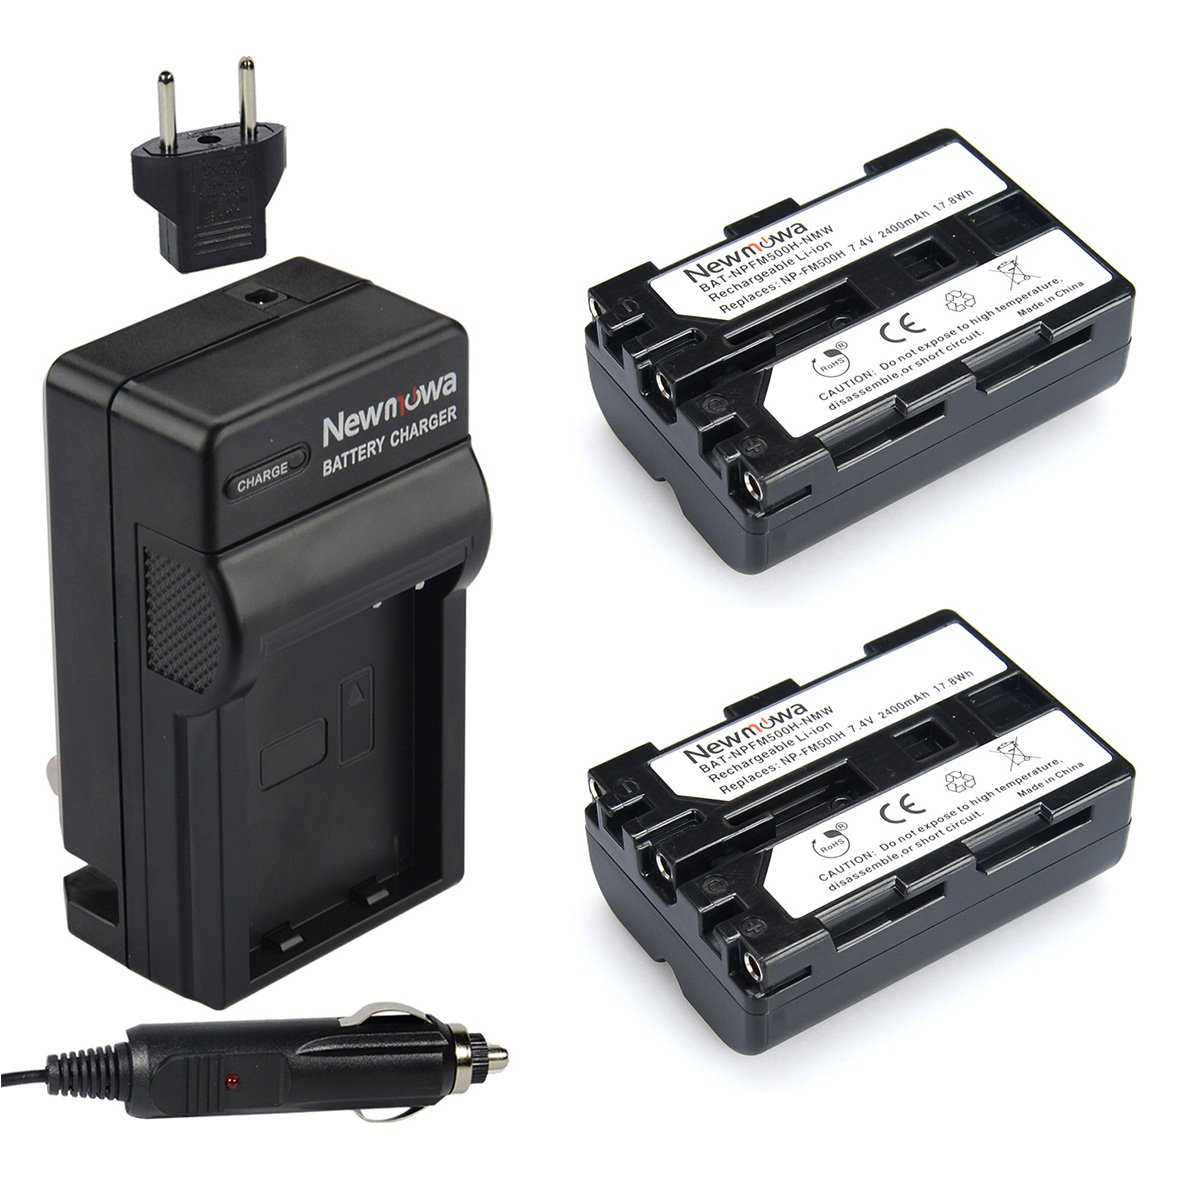 Newmowa NP-FM500H Replacement Battery (2-Pack) and Charger Kit for Sony Alpha A57 A58 A65 A77 A99 A500 A550 A560 A580 A700 A850 A900 Sony SLT a99 II